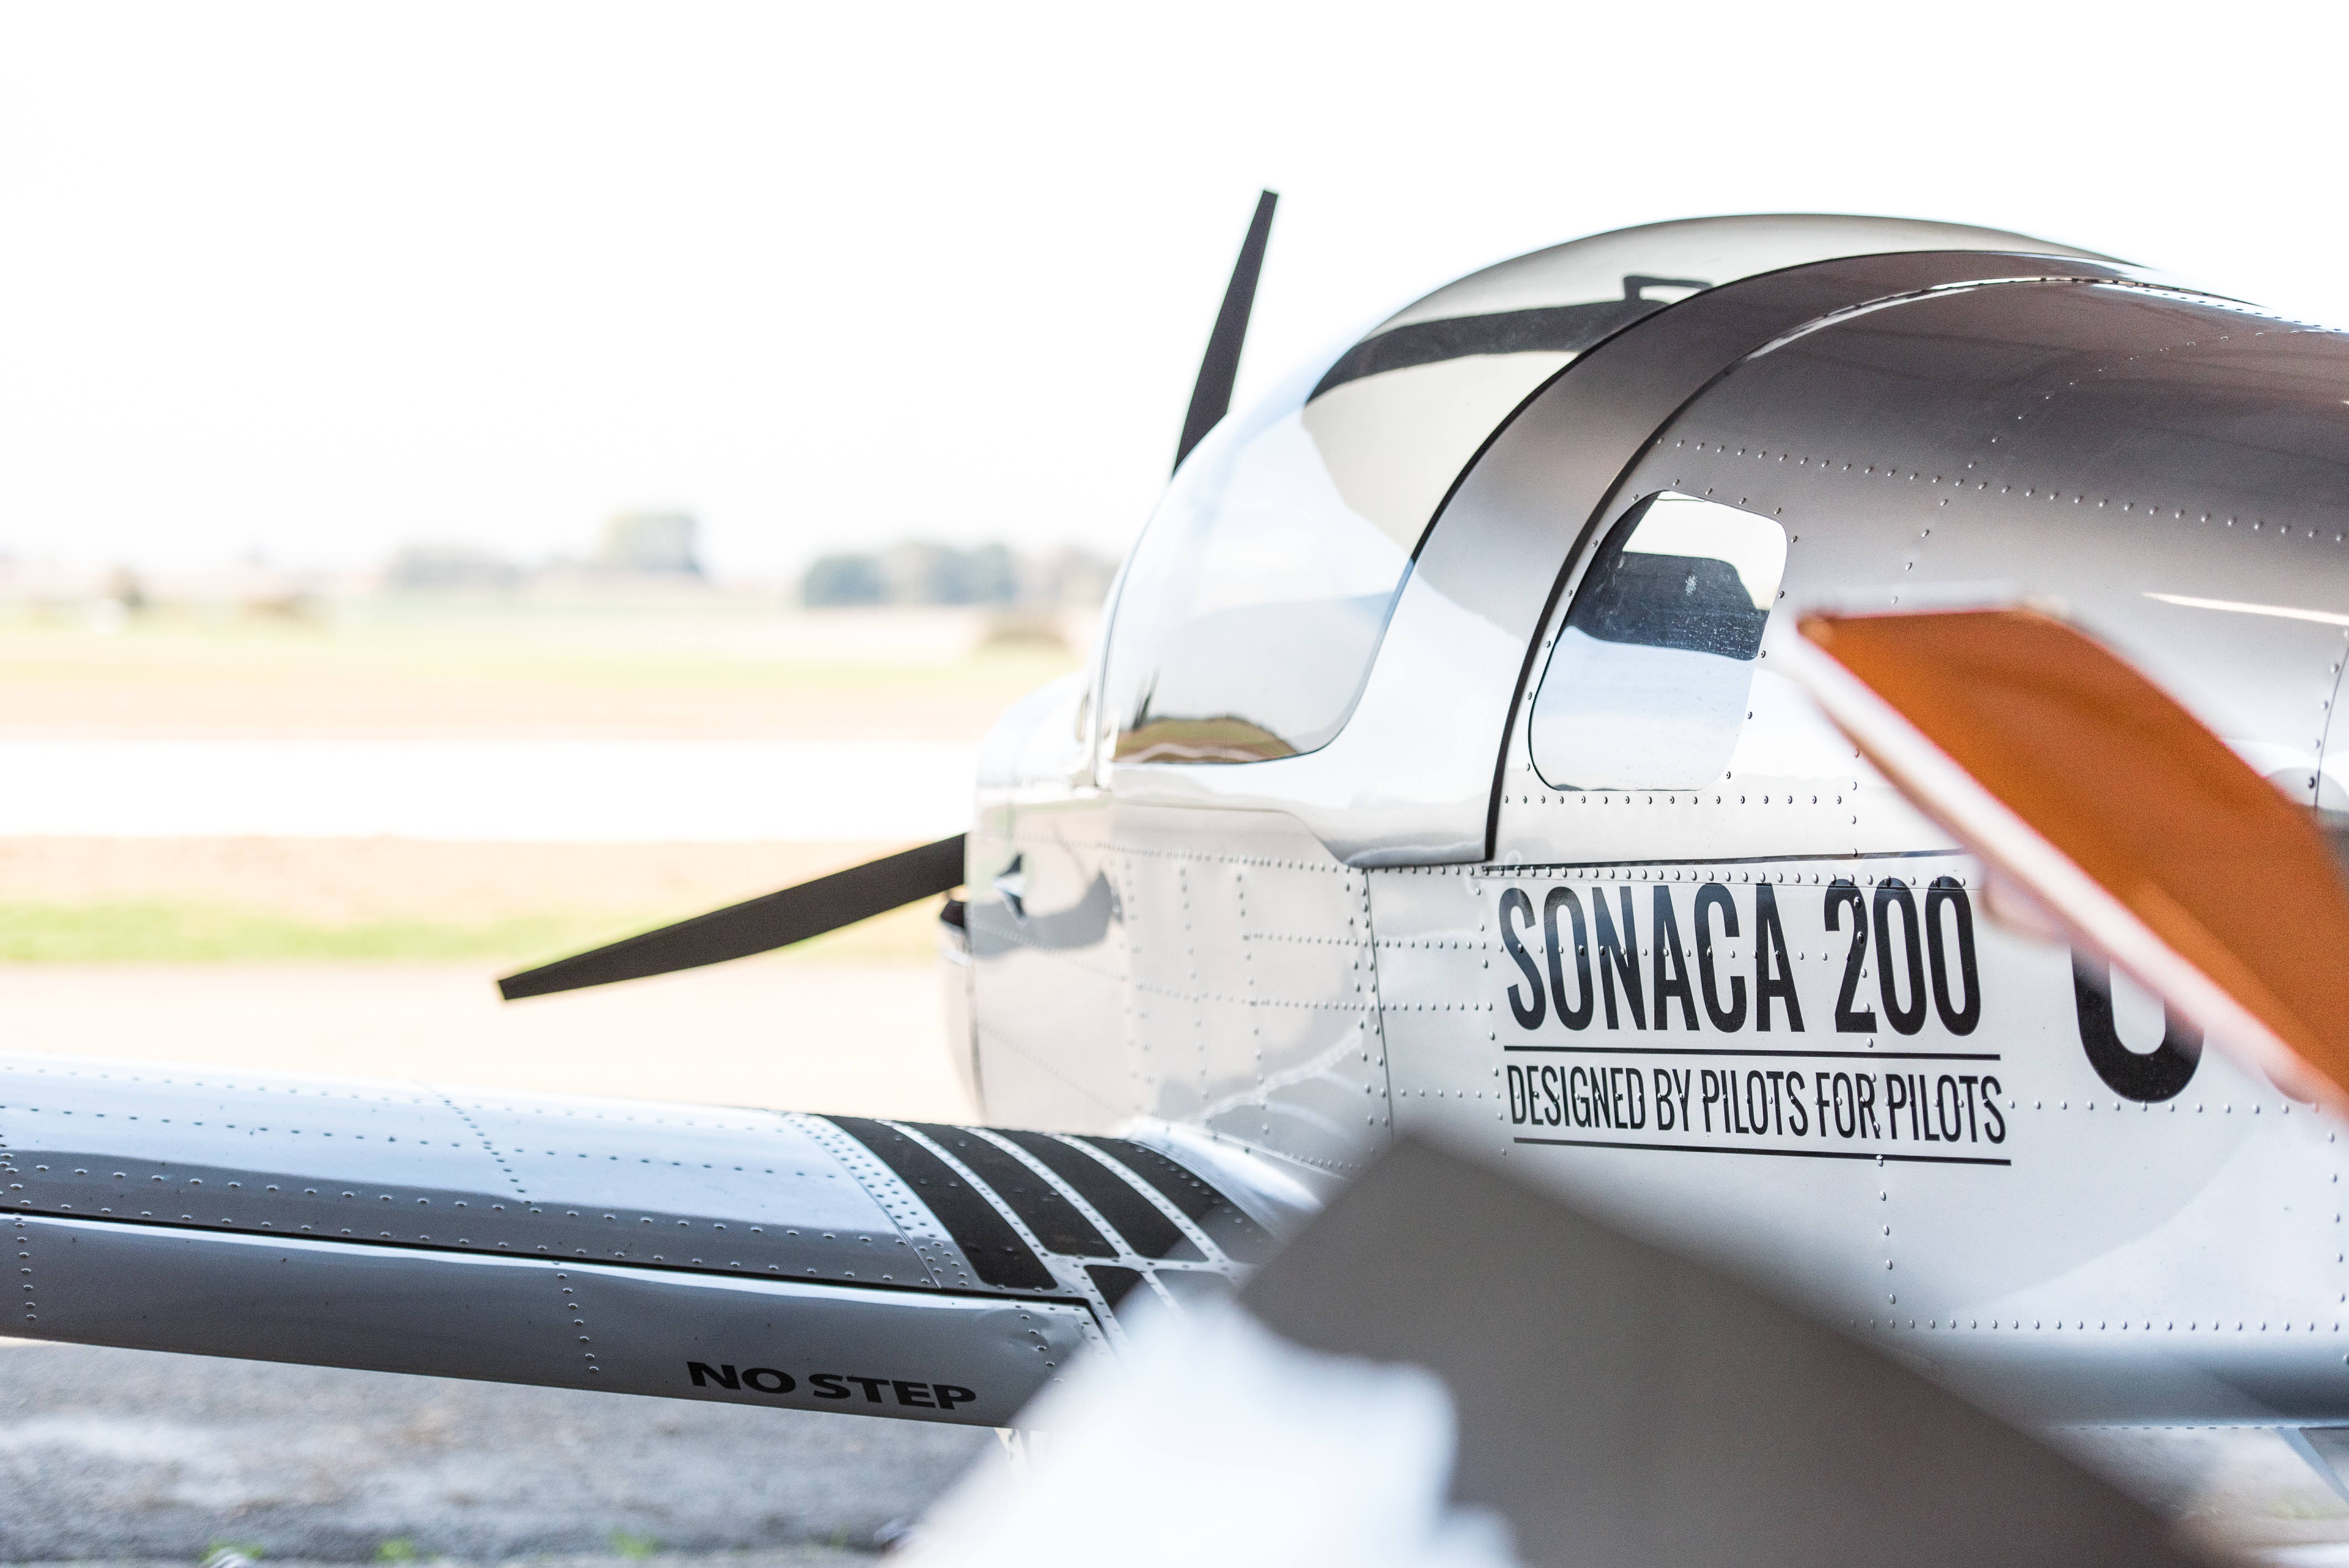 Discover Sonaca 200 Trainer Pro at the Aero Friedrichshafen